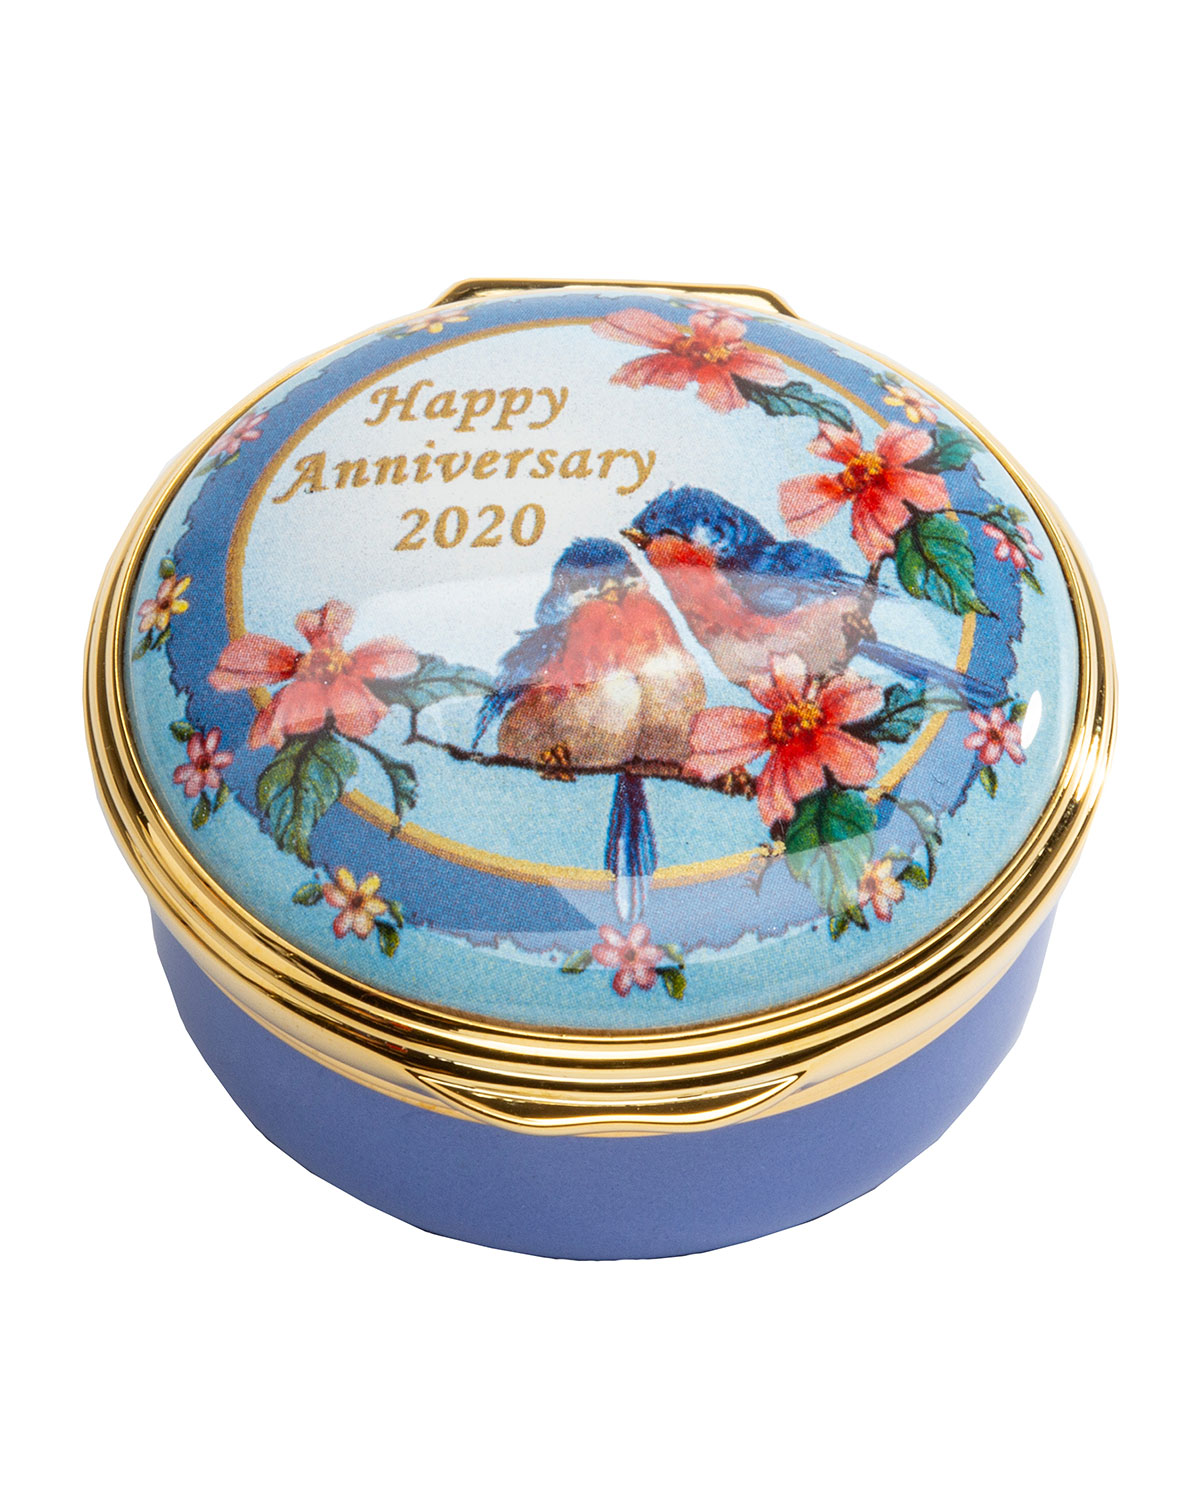 Halcyon Days 2020 Happy Anniversary Enamel Box